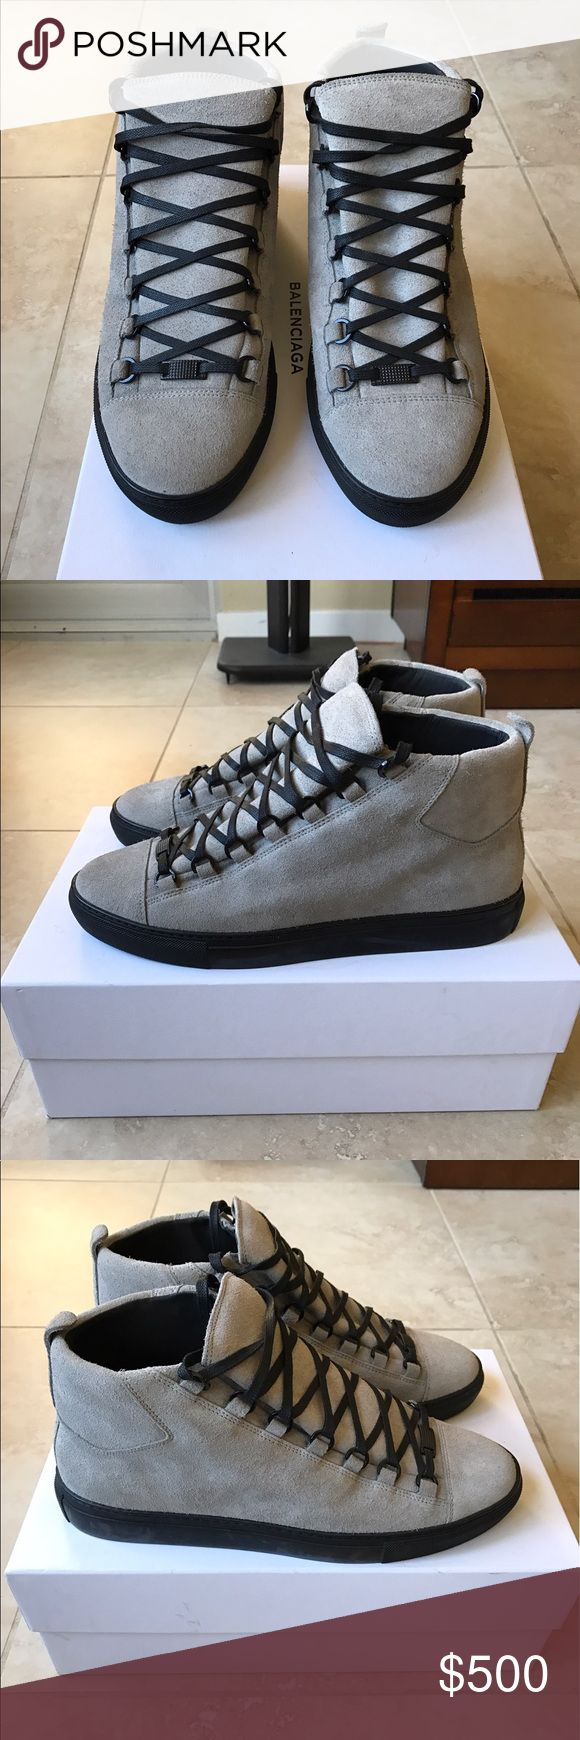 Balenciaga Arena High Grey / Black Authentic Balenciaga Arena High Sneakers in Gris Suede Leather. Purchased new from South Cost Plaza Balenciaga and in mint condition. These are fairly hard to come by and definitely attract attention/ admiration as this colorway is not seen worn often. Get it now for a fraction of retail price.   Size 43  100% Authentic Balenciaga Arena sneaker in Gris suede. This is the first time in several years that Balenciaga has released the Arena in suede. Don't miss…